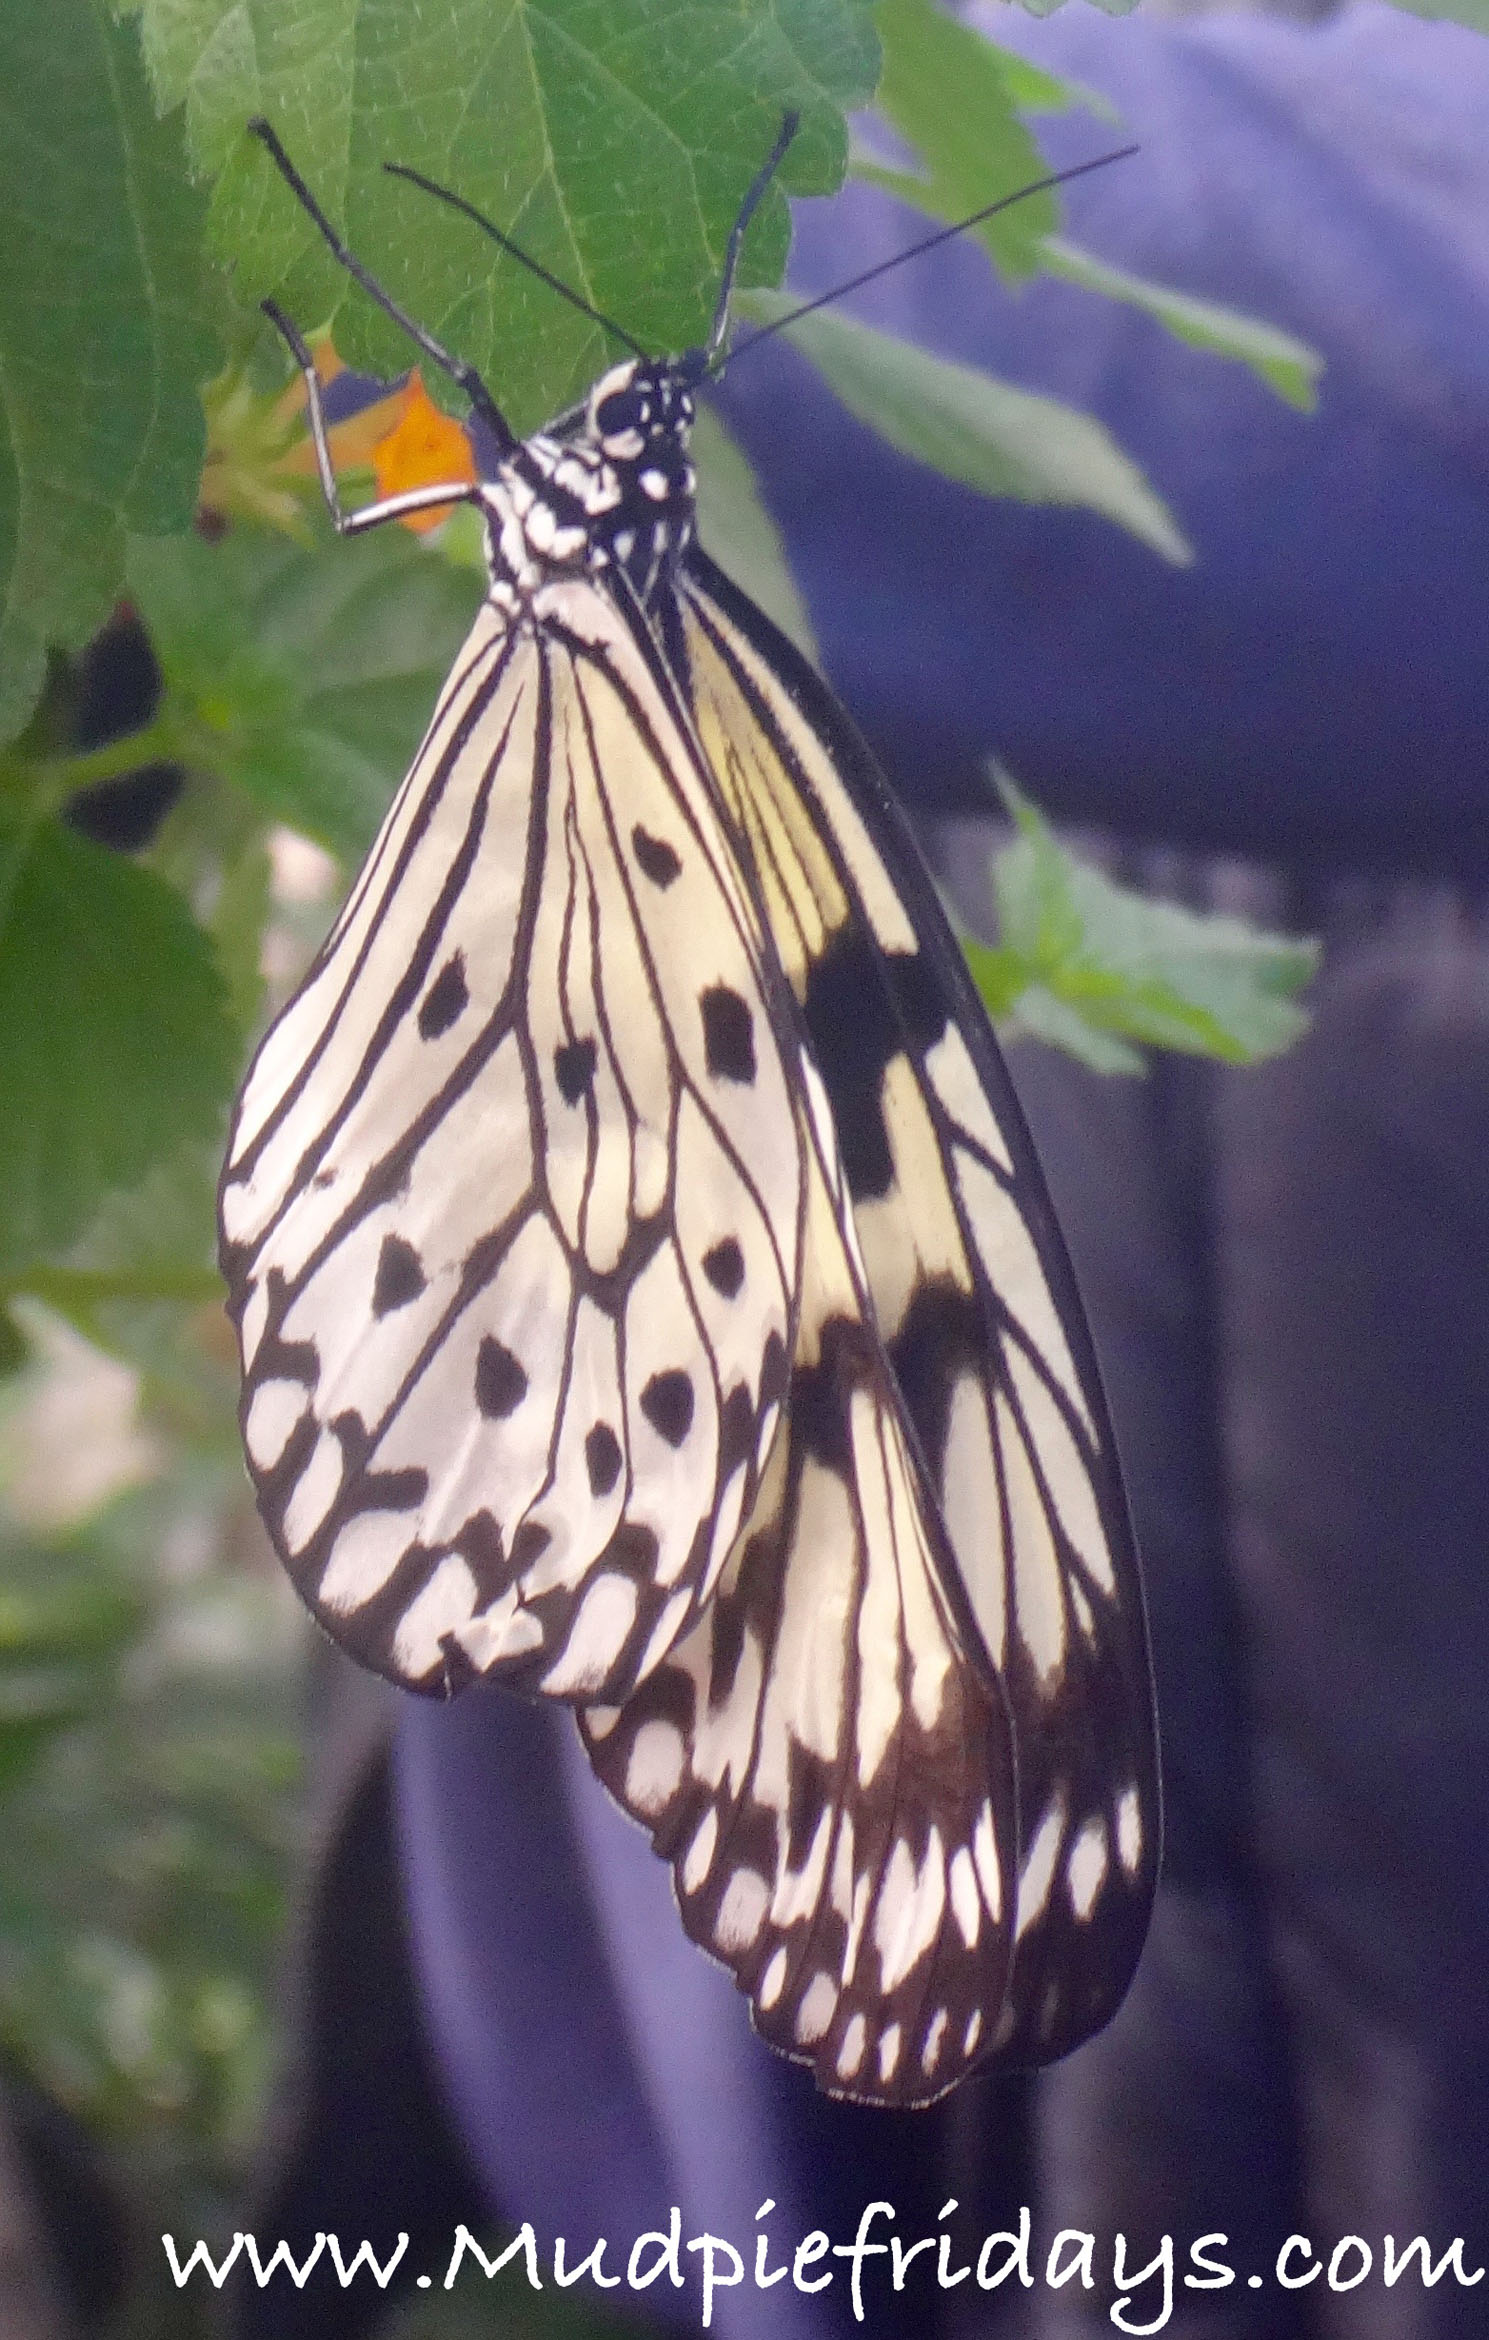 Butterflies at Wisley Glsss House